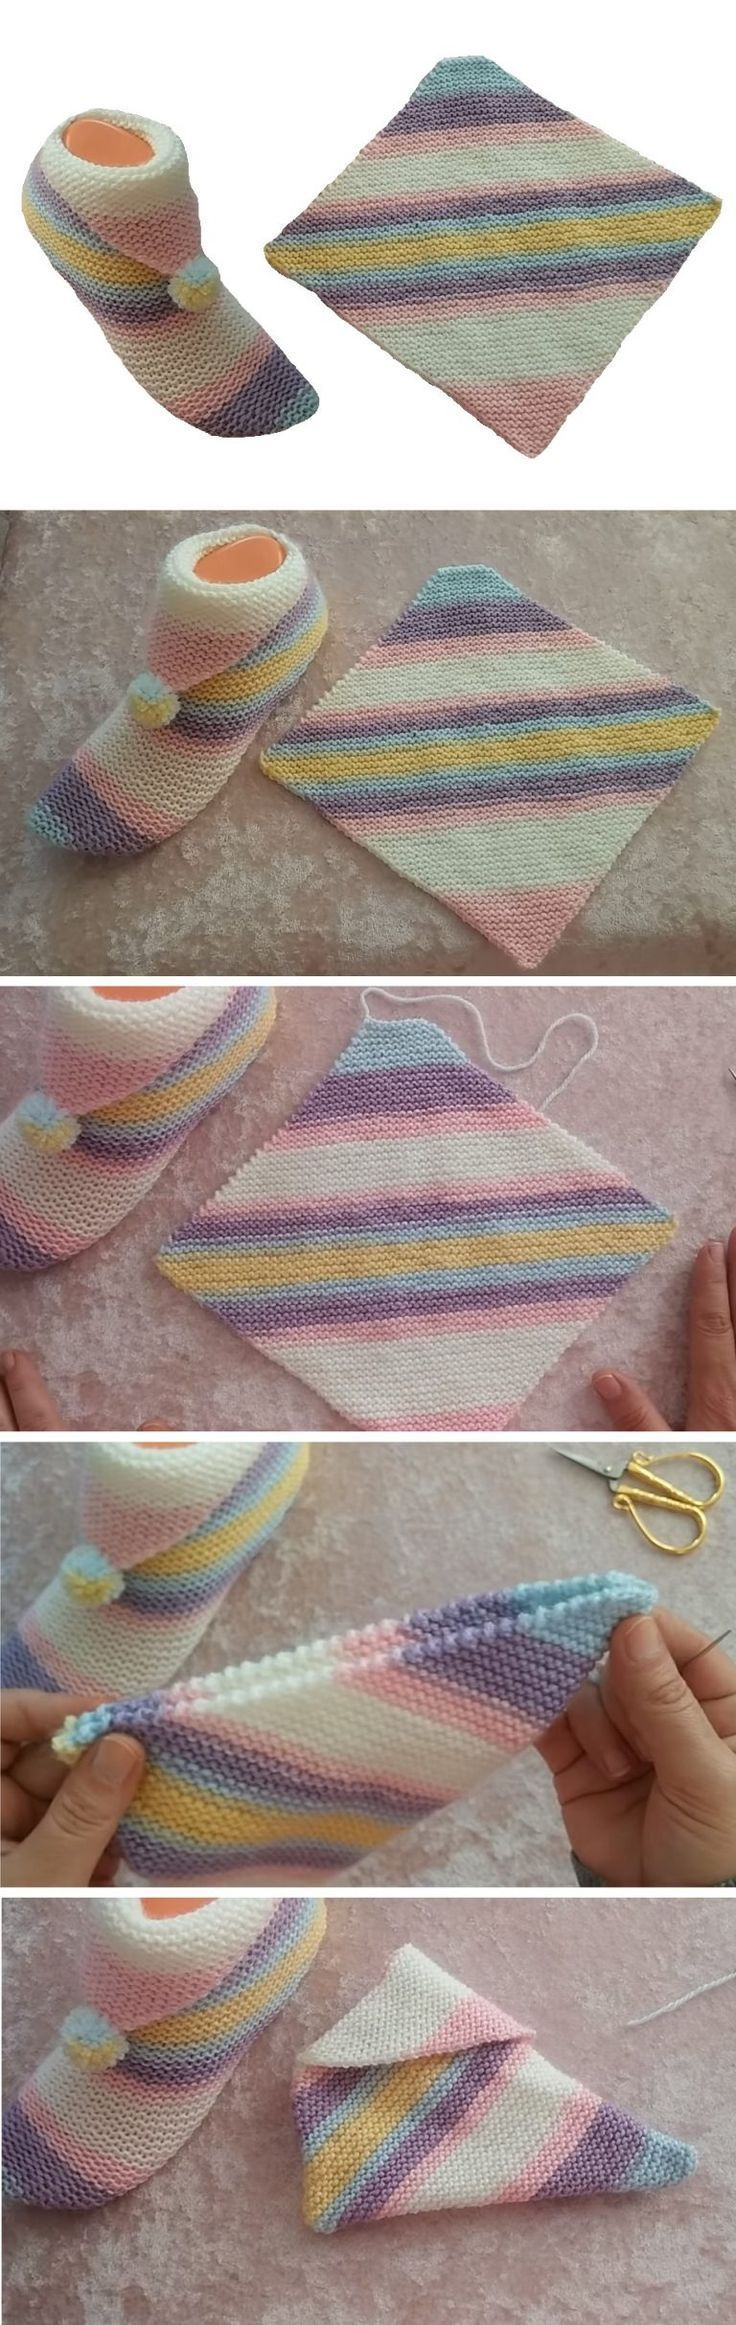 Simple Step by Step Slippers Tutorial – #ideen #si… – #Ideen #recuperation #Si